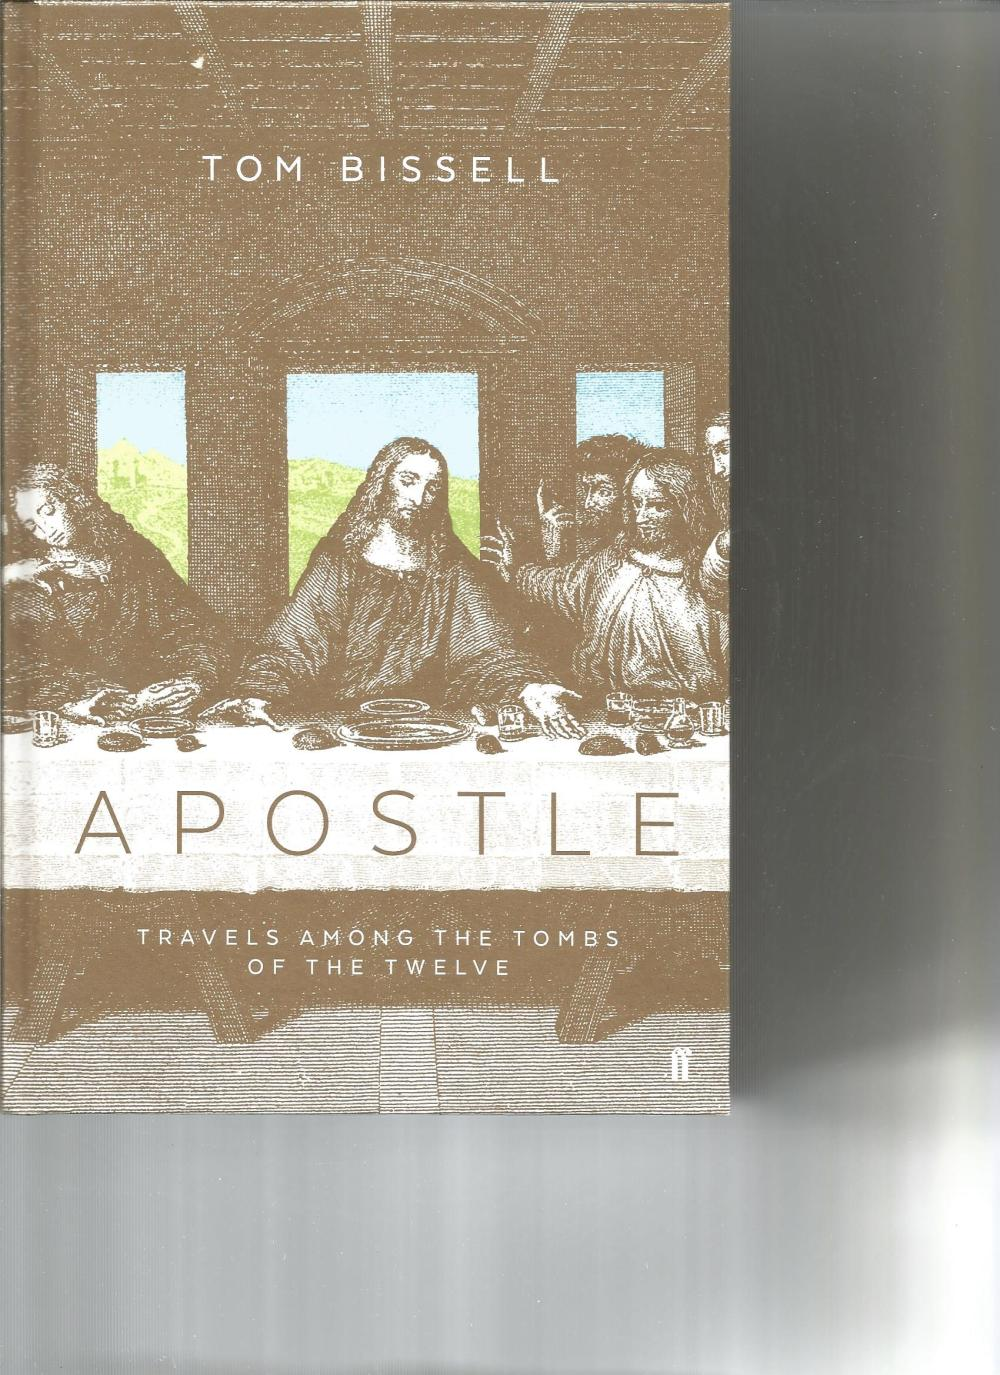 Apostle Travels Among The Tombs of The Twelve by Tom Bissell. Unsigned hard back book with no dust